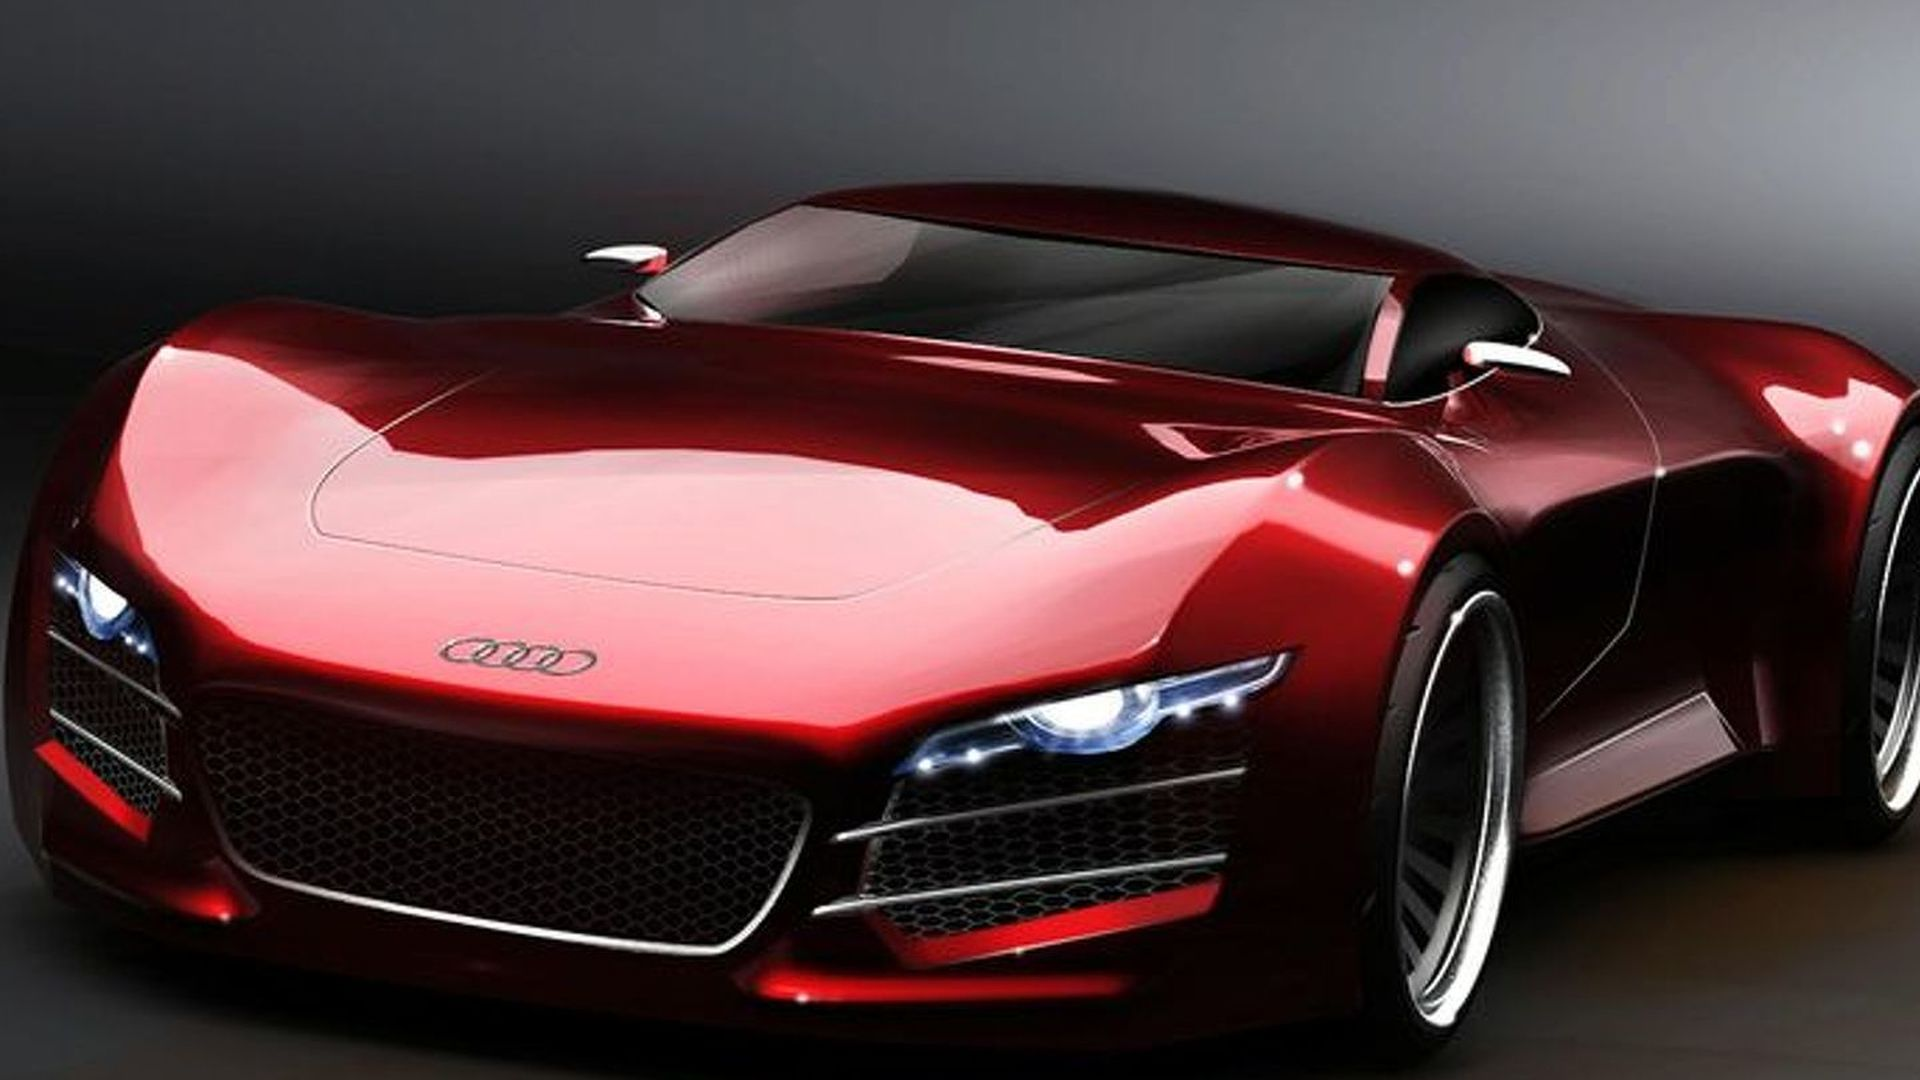 Audi supercar to be 'very special', not approved yet